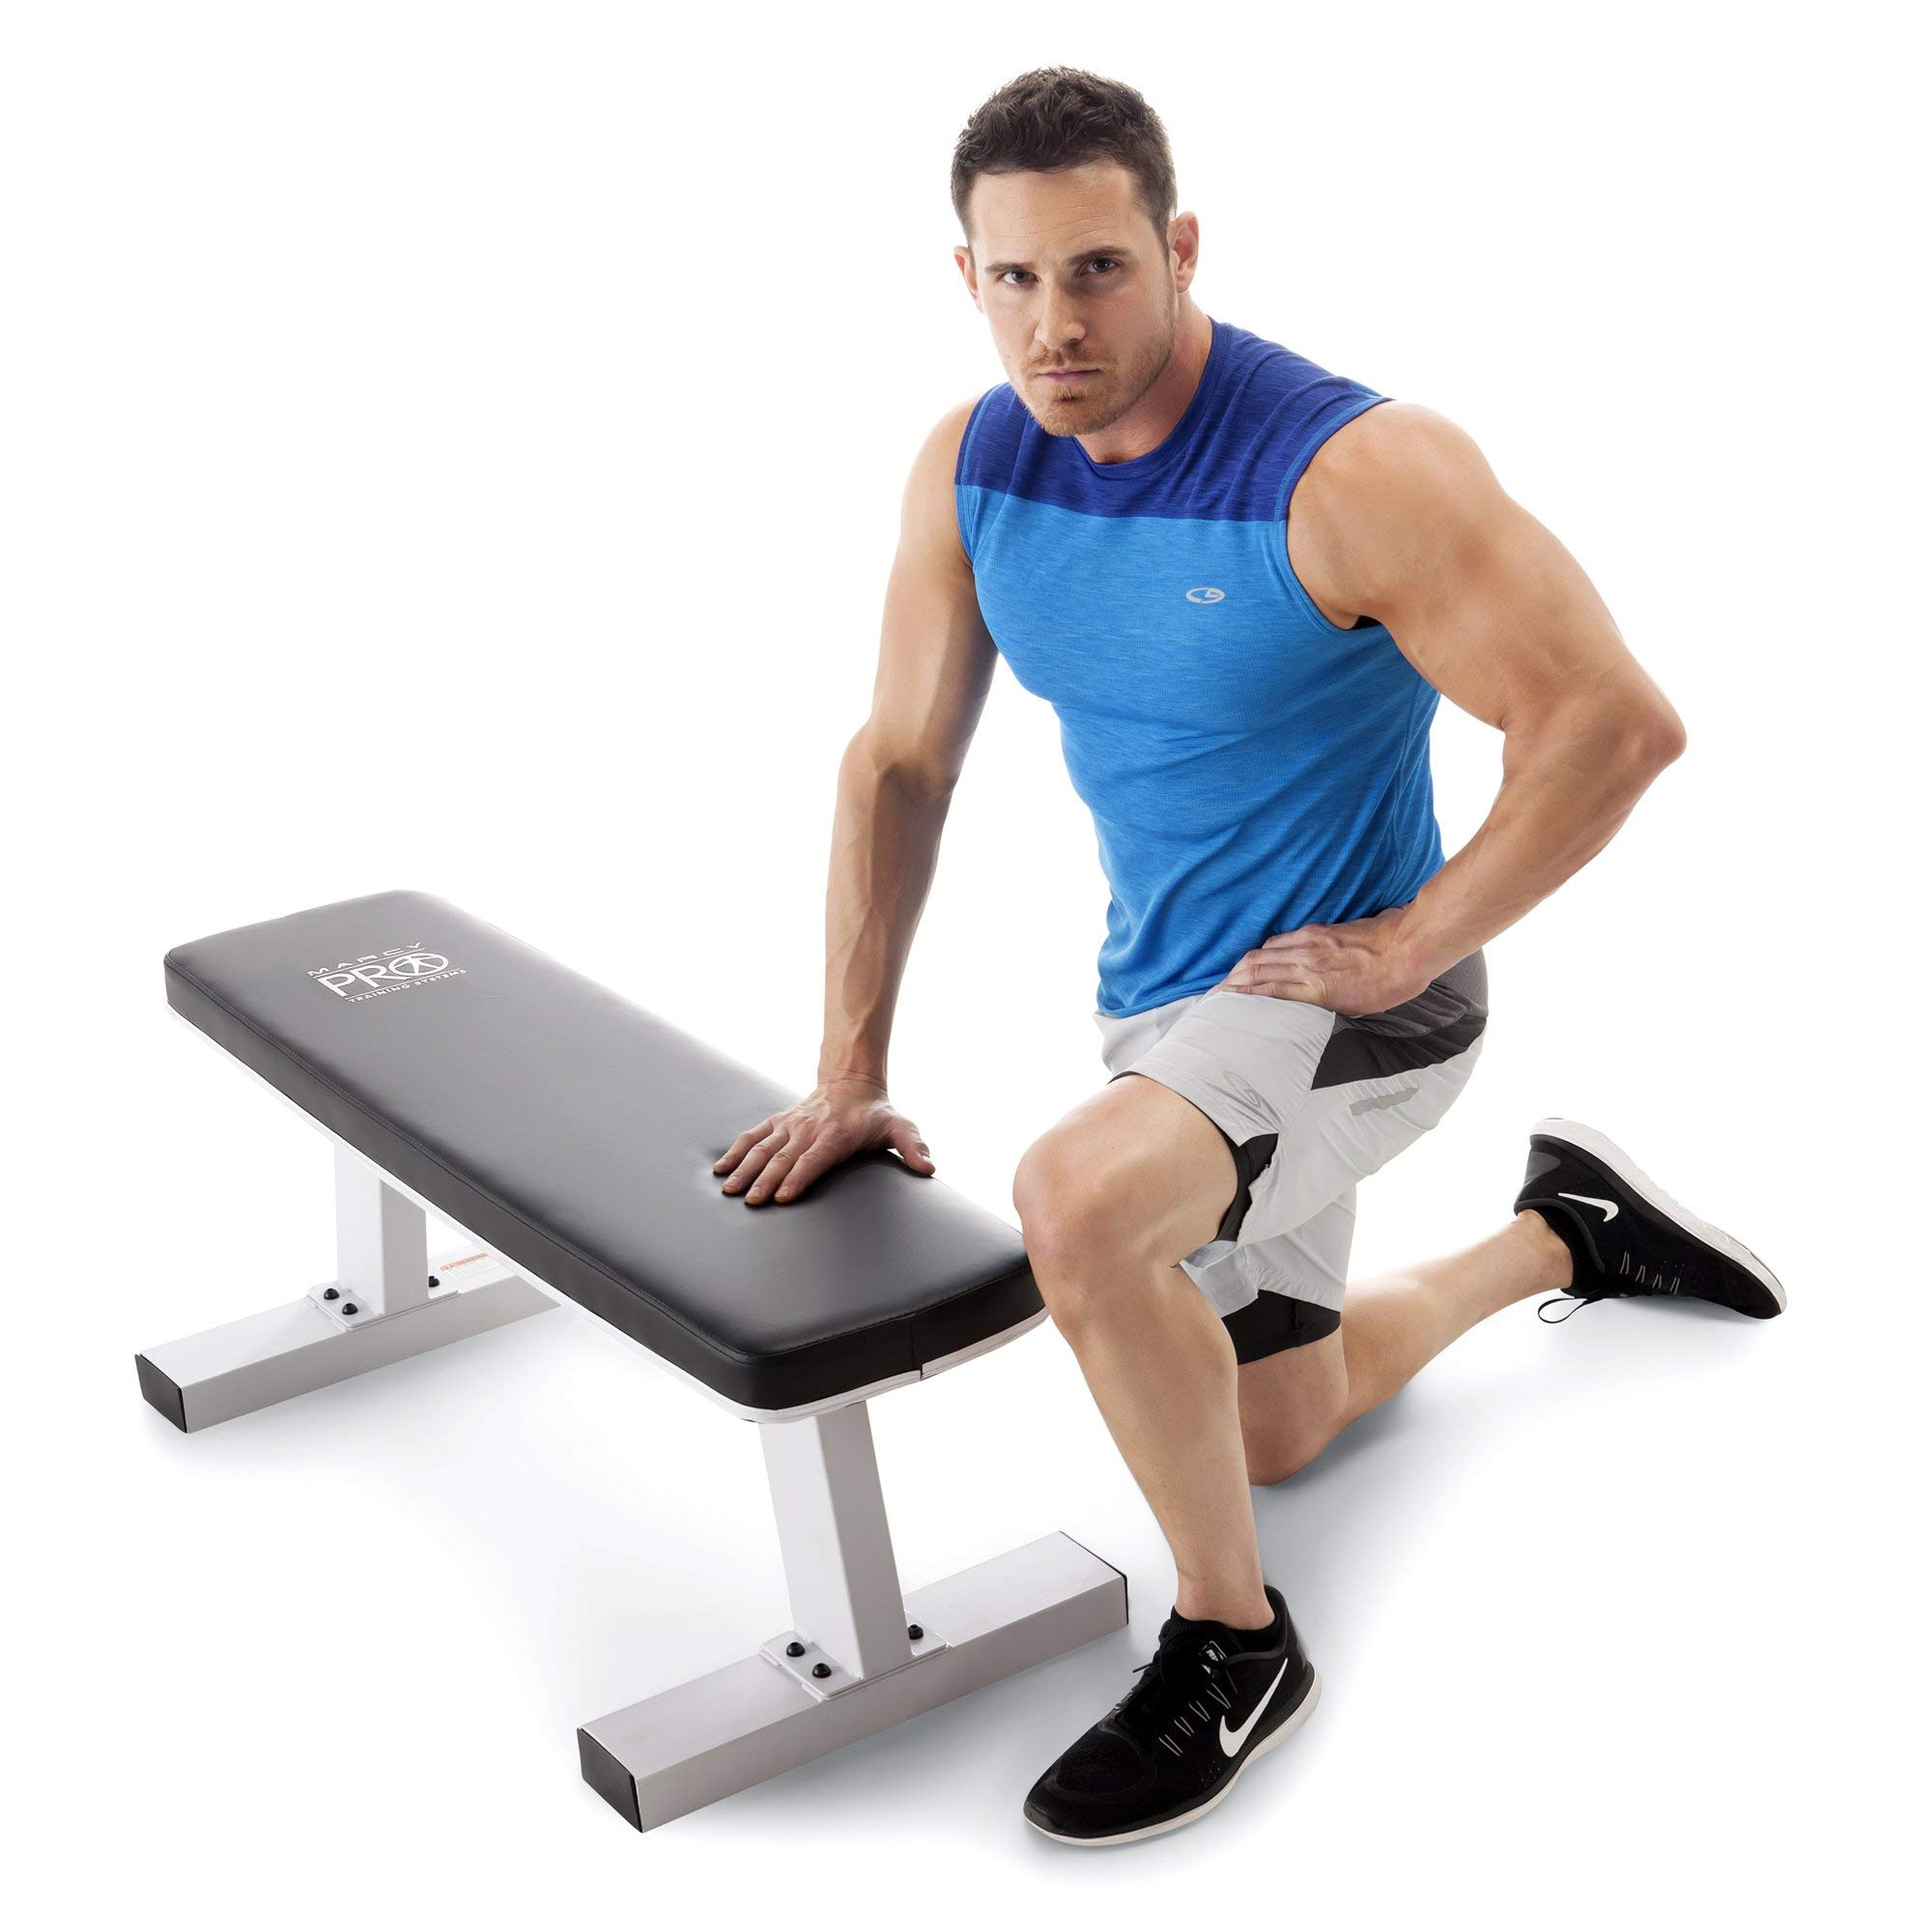 Marcy Home Gym Exercise Fitness Training Workout Flat Board Weight Lifting Bench